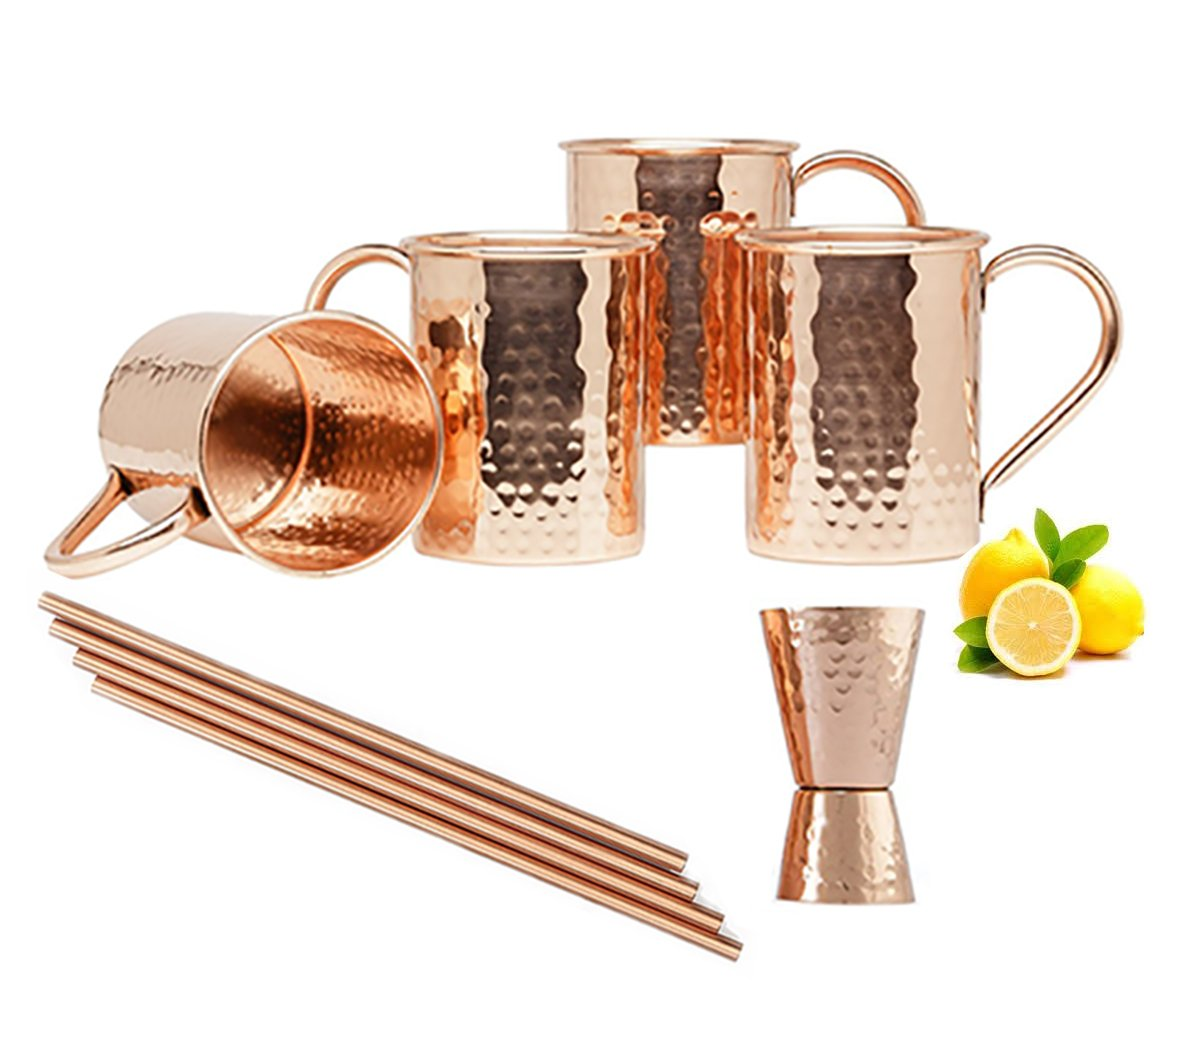 Moscow Mule Copper Mugs - Set of 4-100% PURE COPPER HANDCRAFTED - Food Safe Pure Solid Copper Mugs - 16 oz Gift Set with BONUS: Highest Quality Cocktail Copper Straws and Jigger!